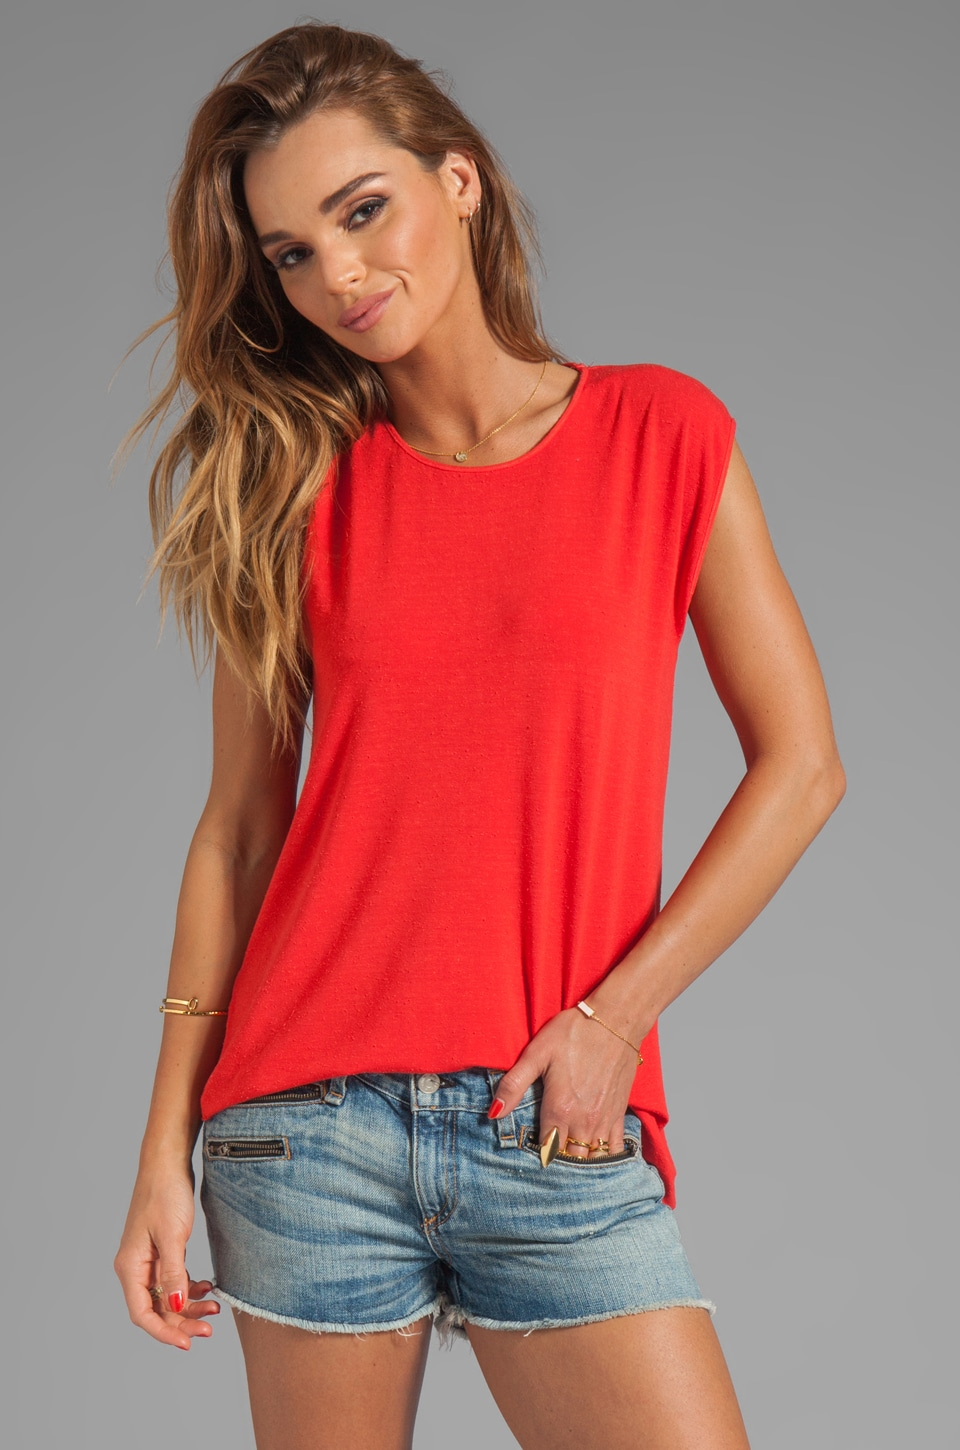 dolan Silk Blend Asymmetrical Muscle Tee in Sunrise